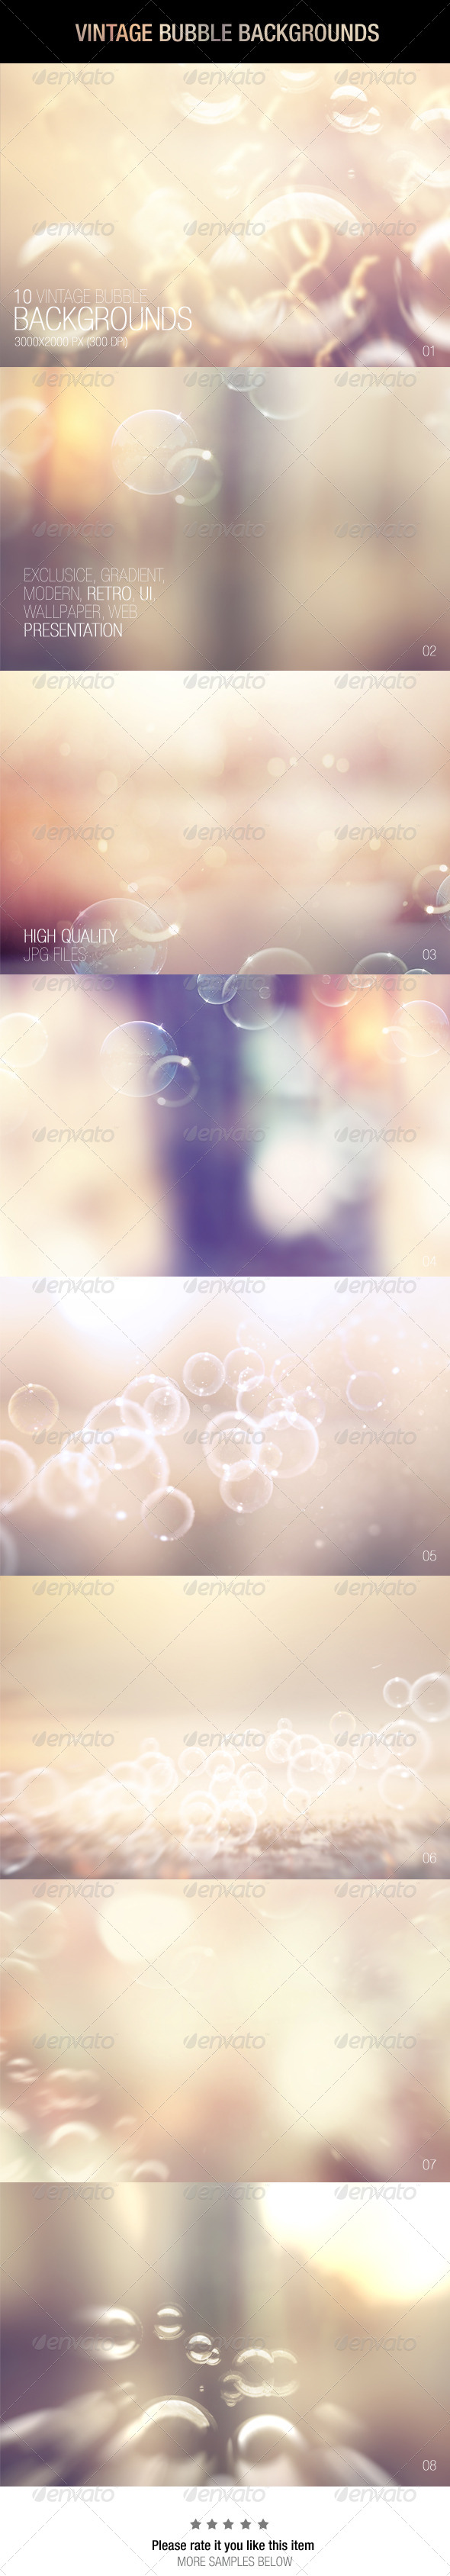 GraphicRiver Vintage Bubble Backgrounds 7351992